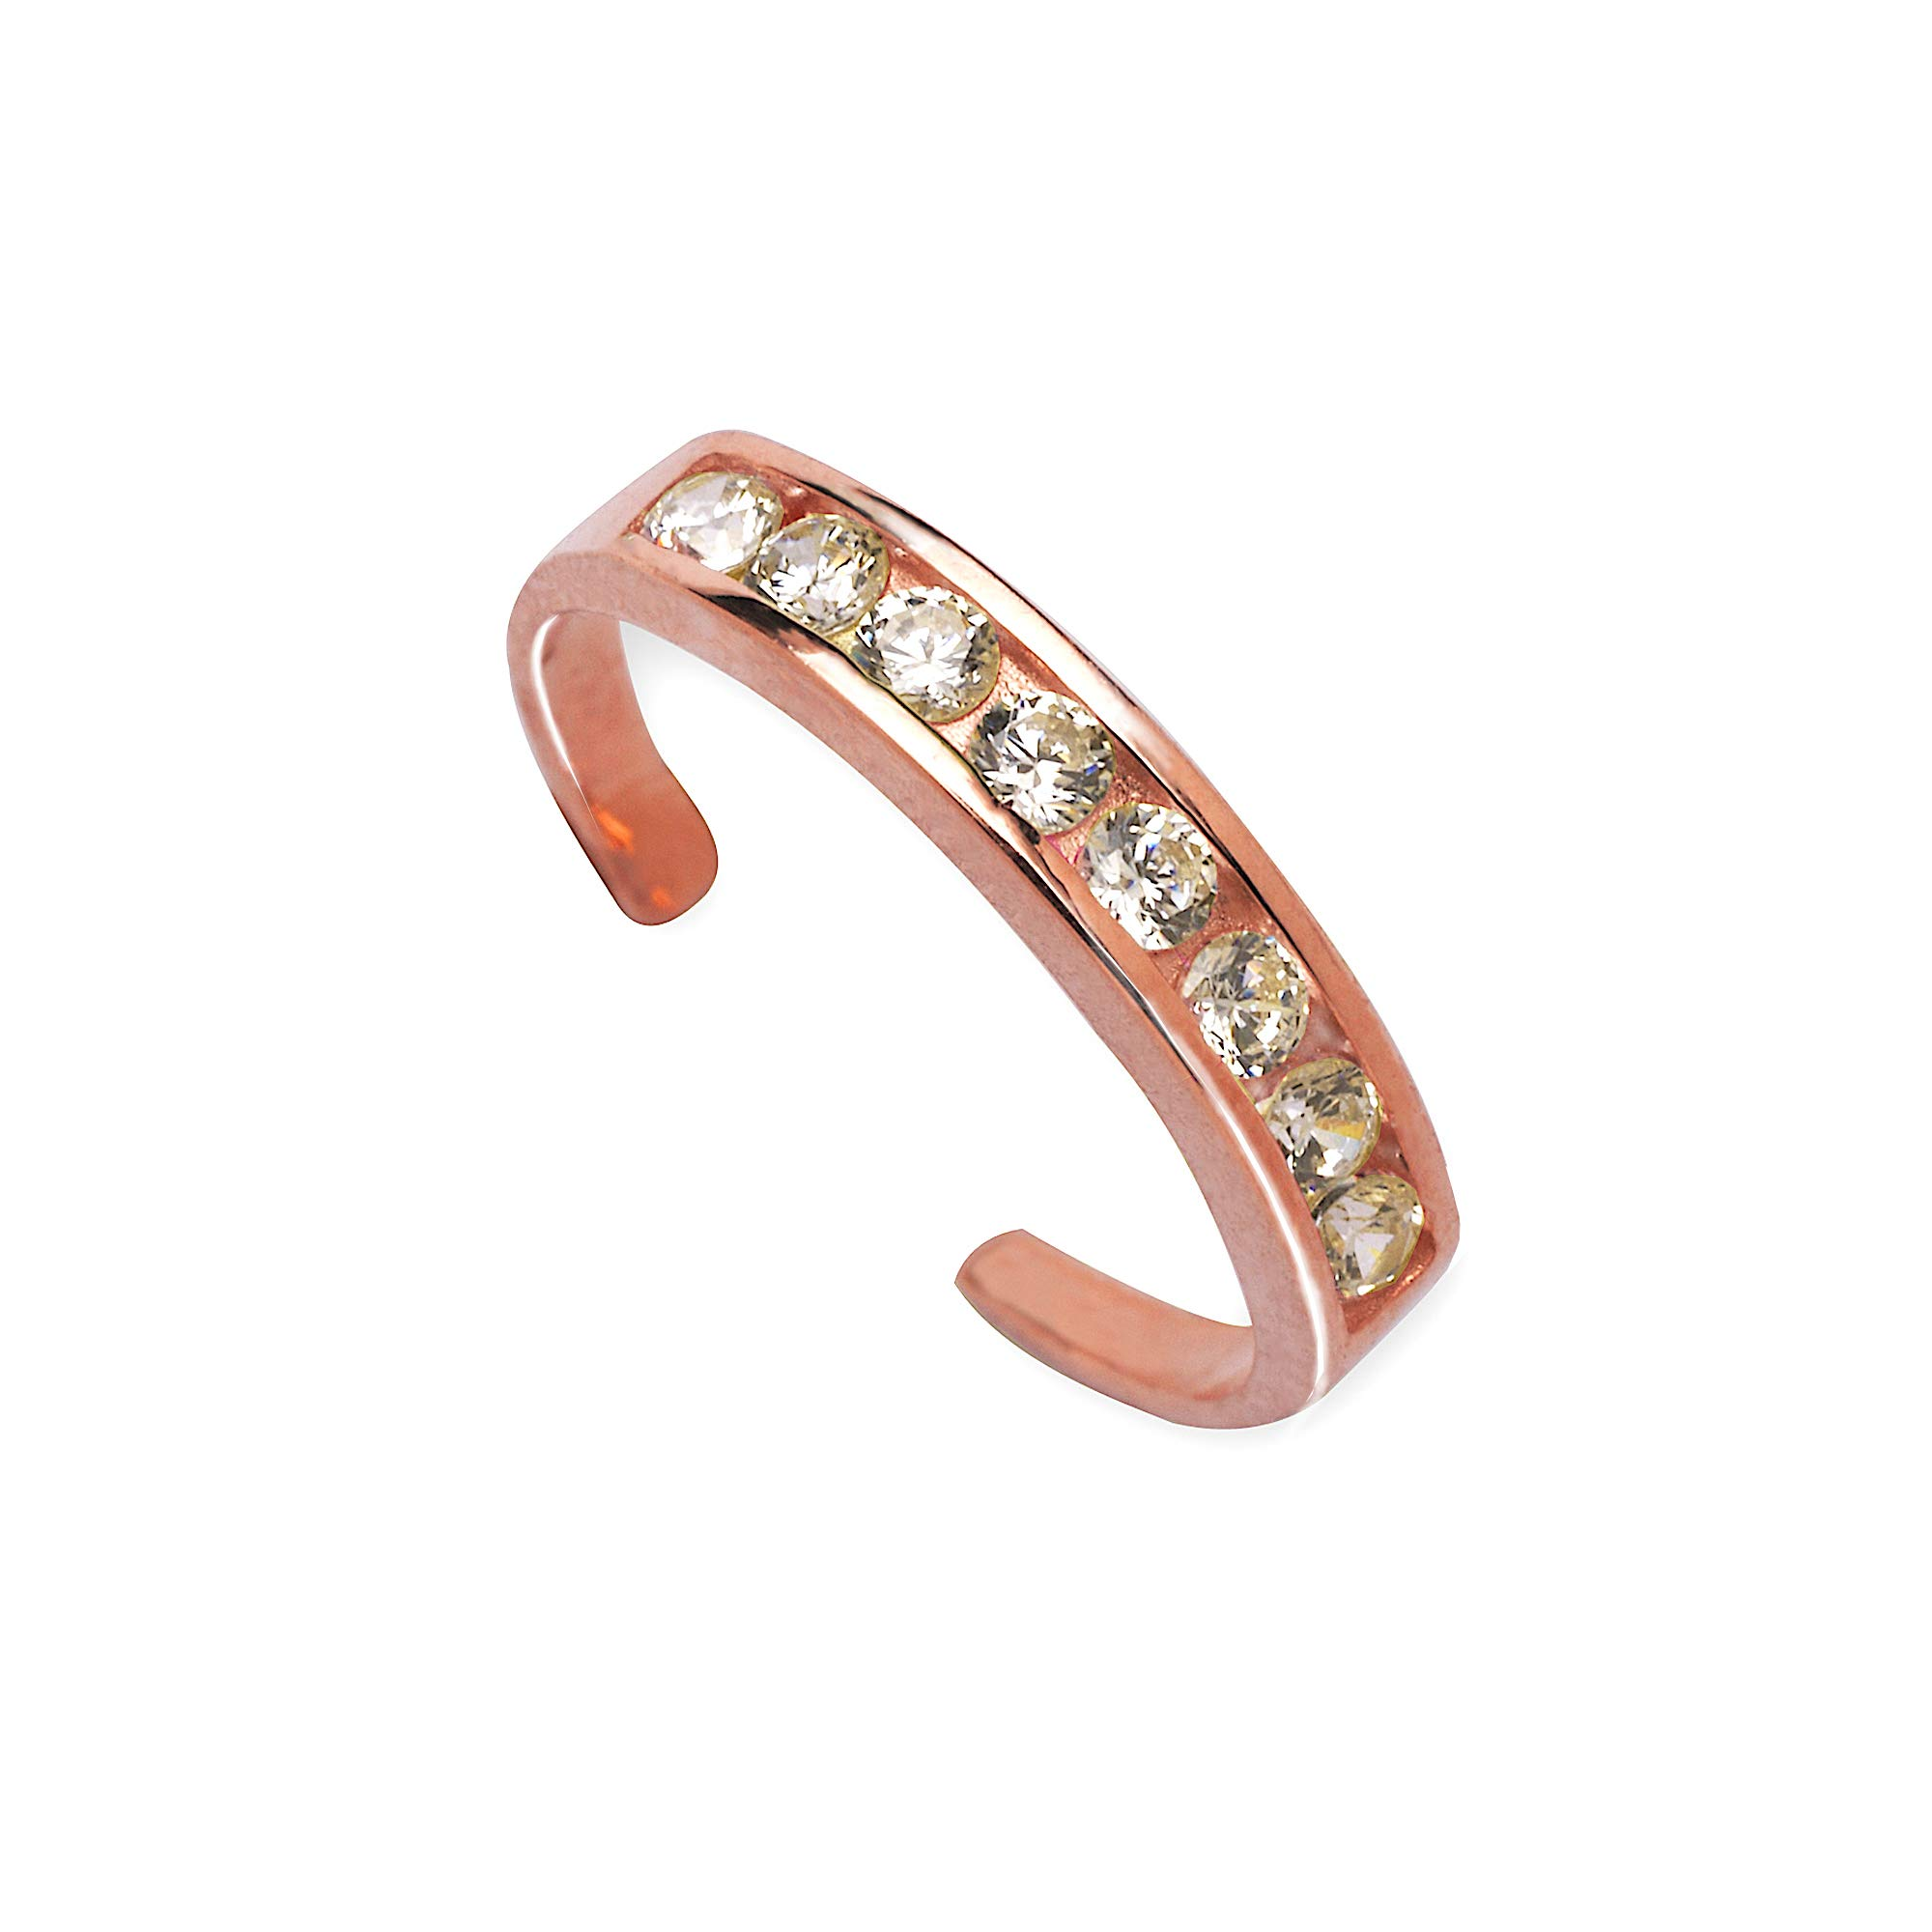 JewelryWeb Solid 14k Rose Gold Channel-Set Round CZ Cubic Zirconia Adjustable Toe Ring (Clear or Pink) (Clear)